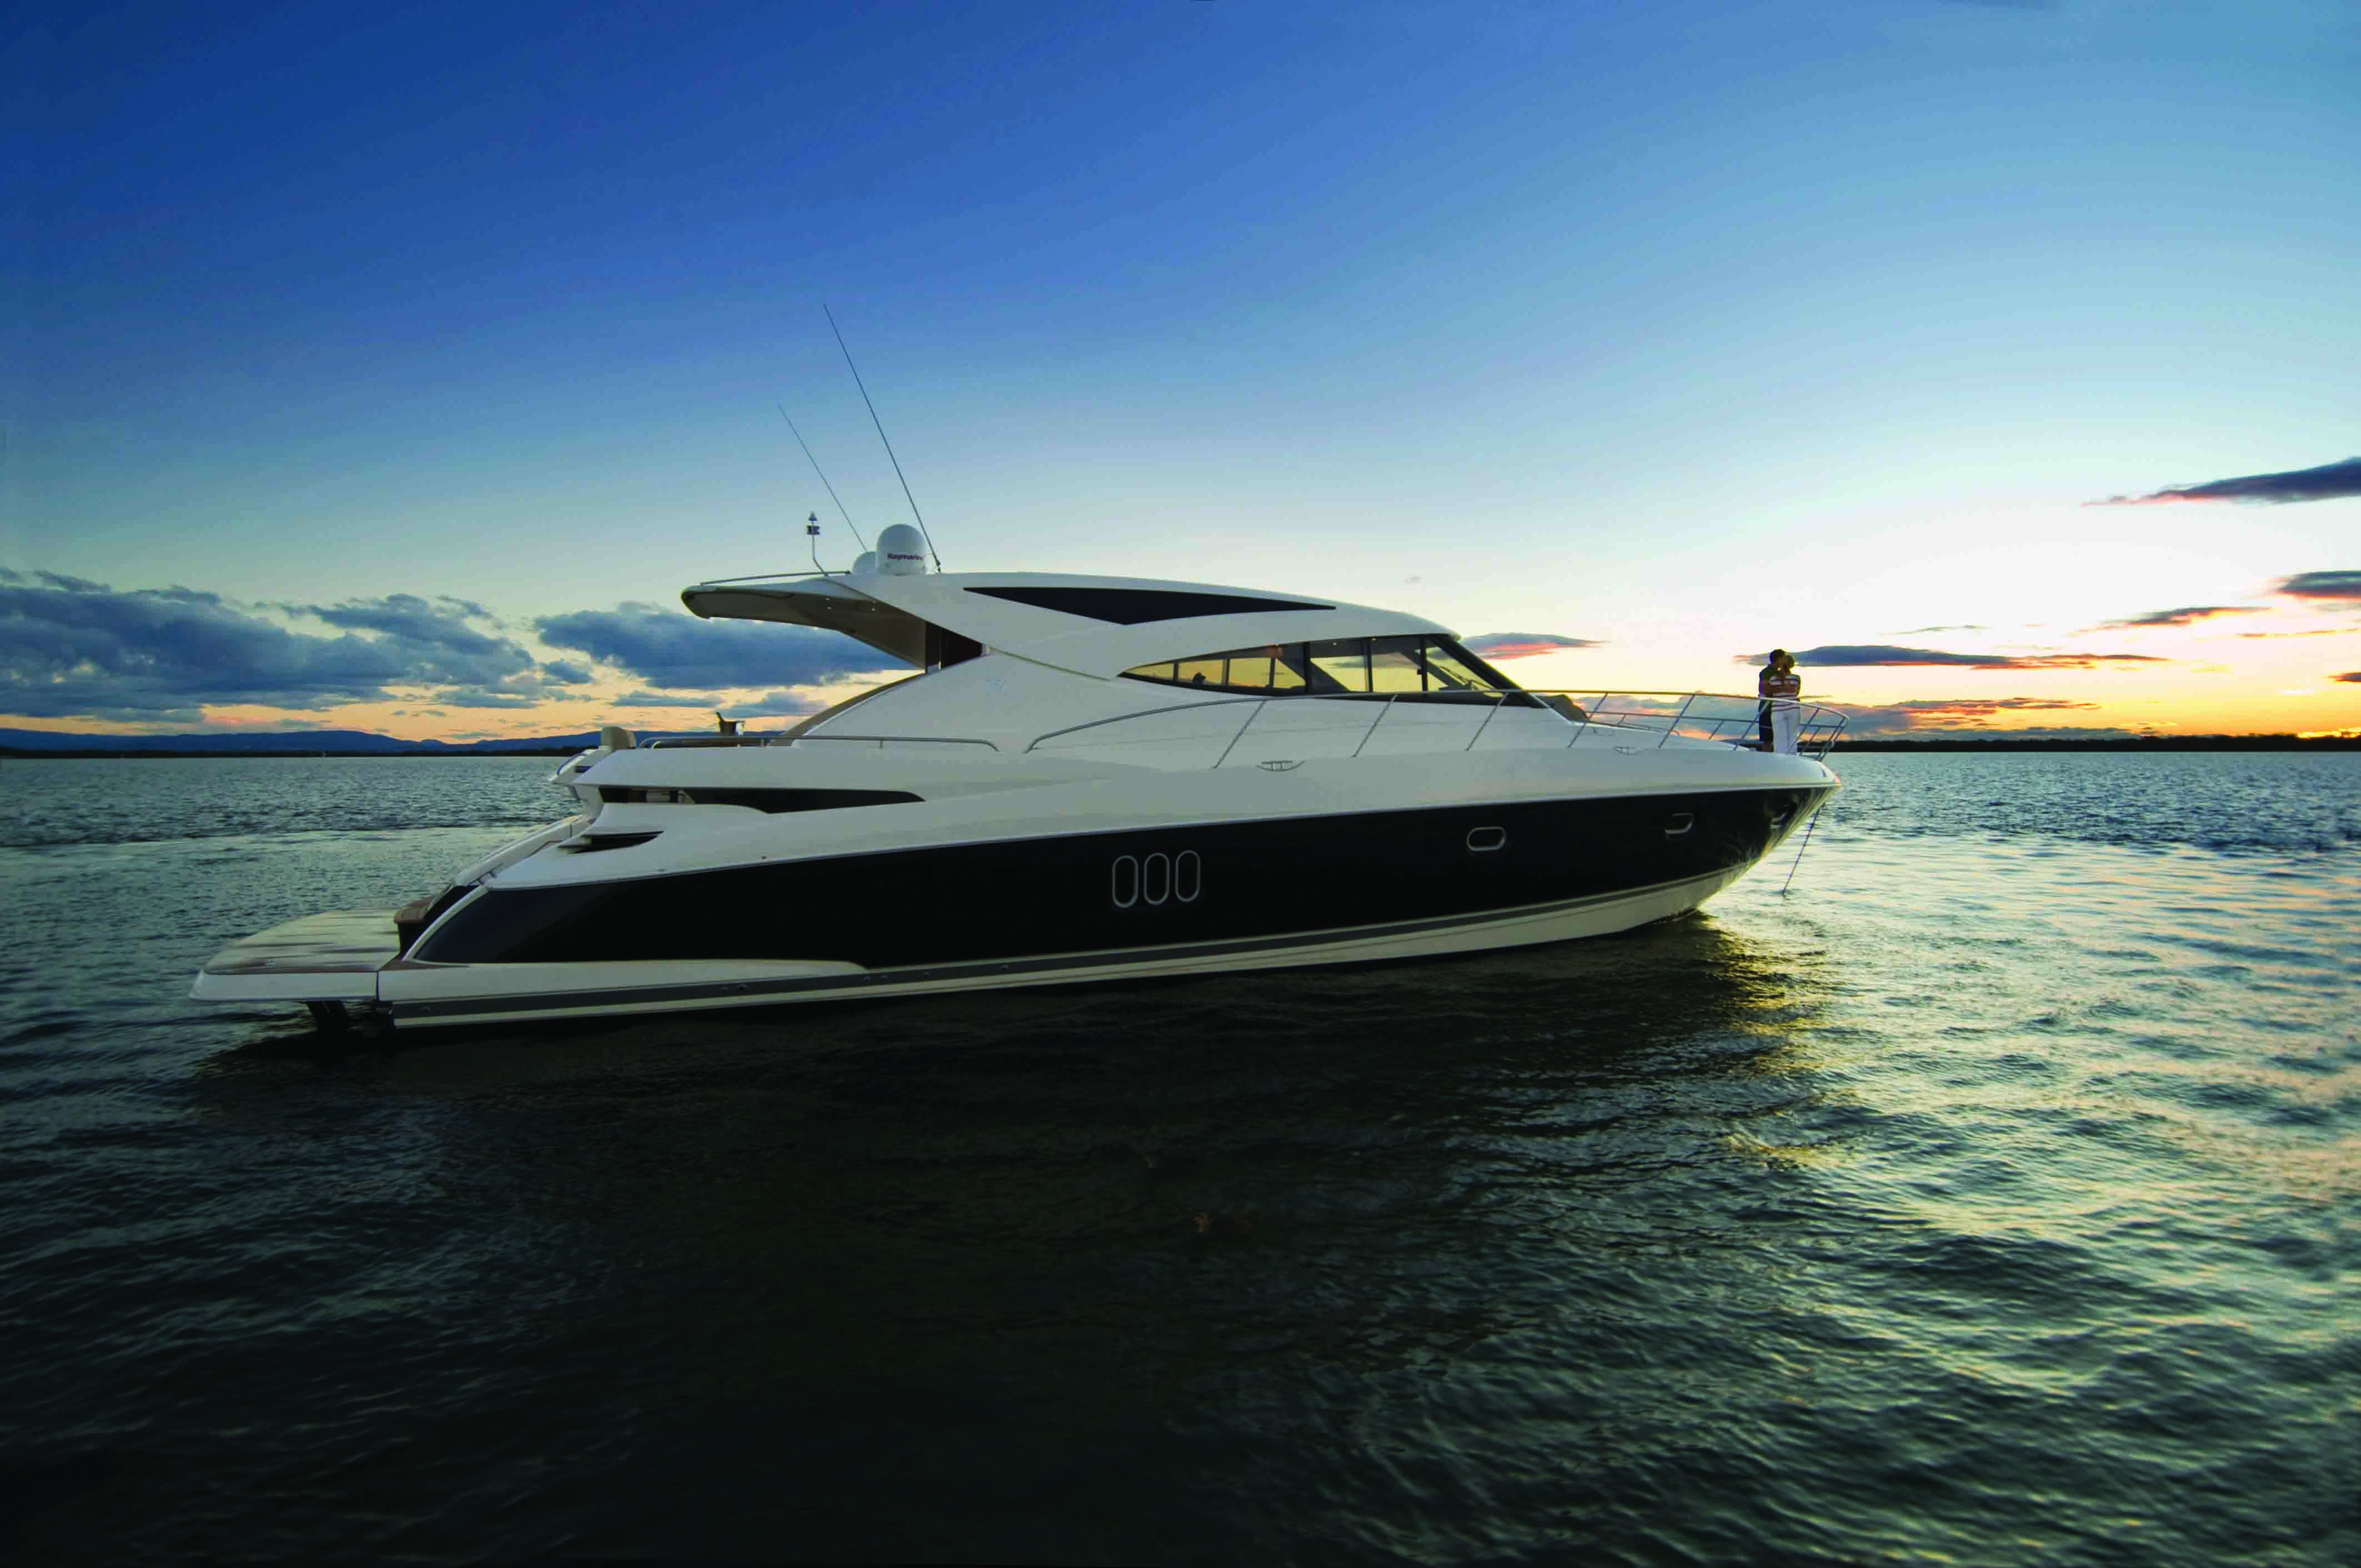 Rivera motor yacht 43 Open Flybridge, Riviera 5000 and 5800 sport yachts to ...